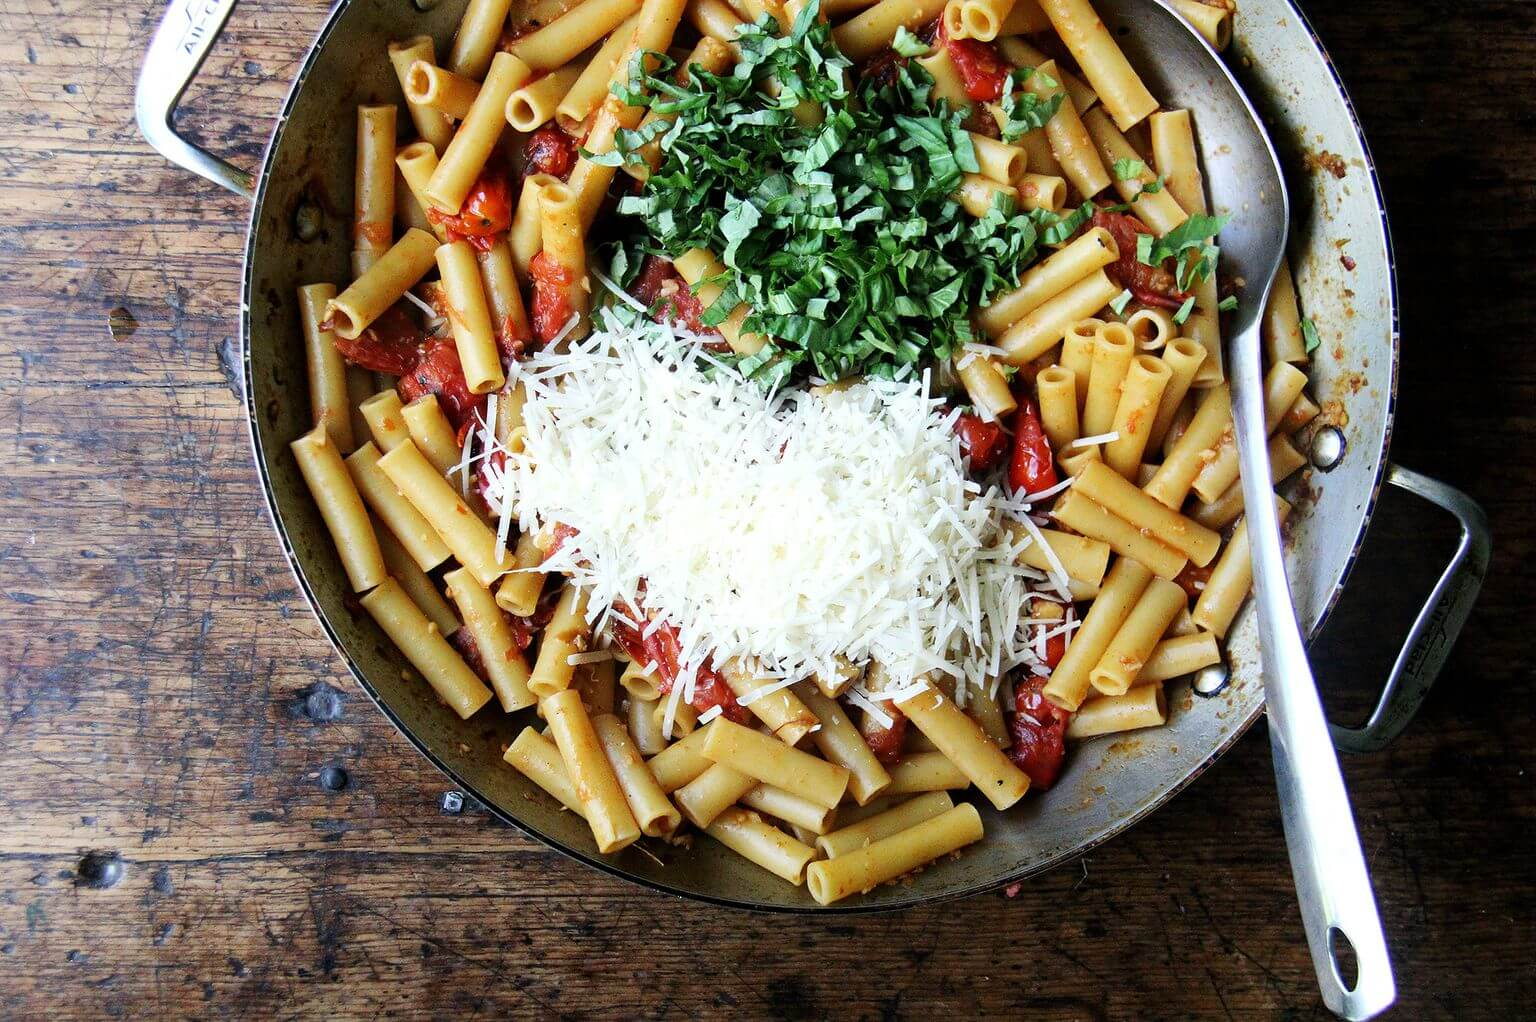 A large skillet with ziti, parmesan, and basil.